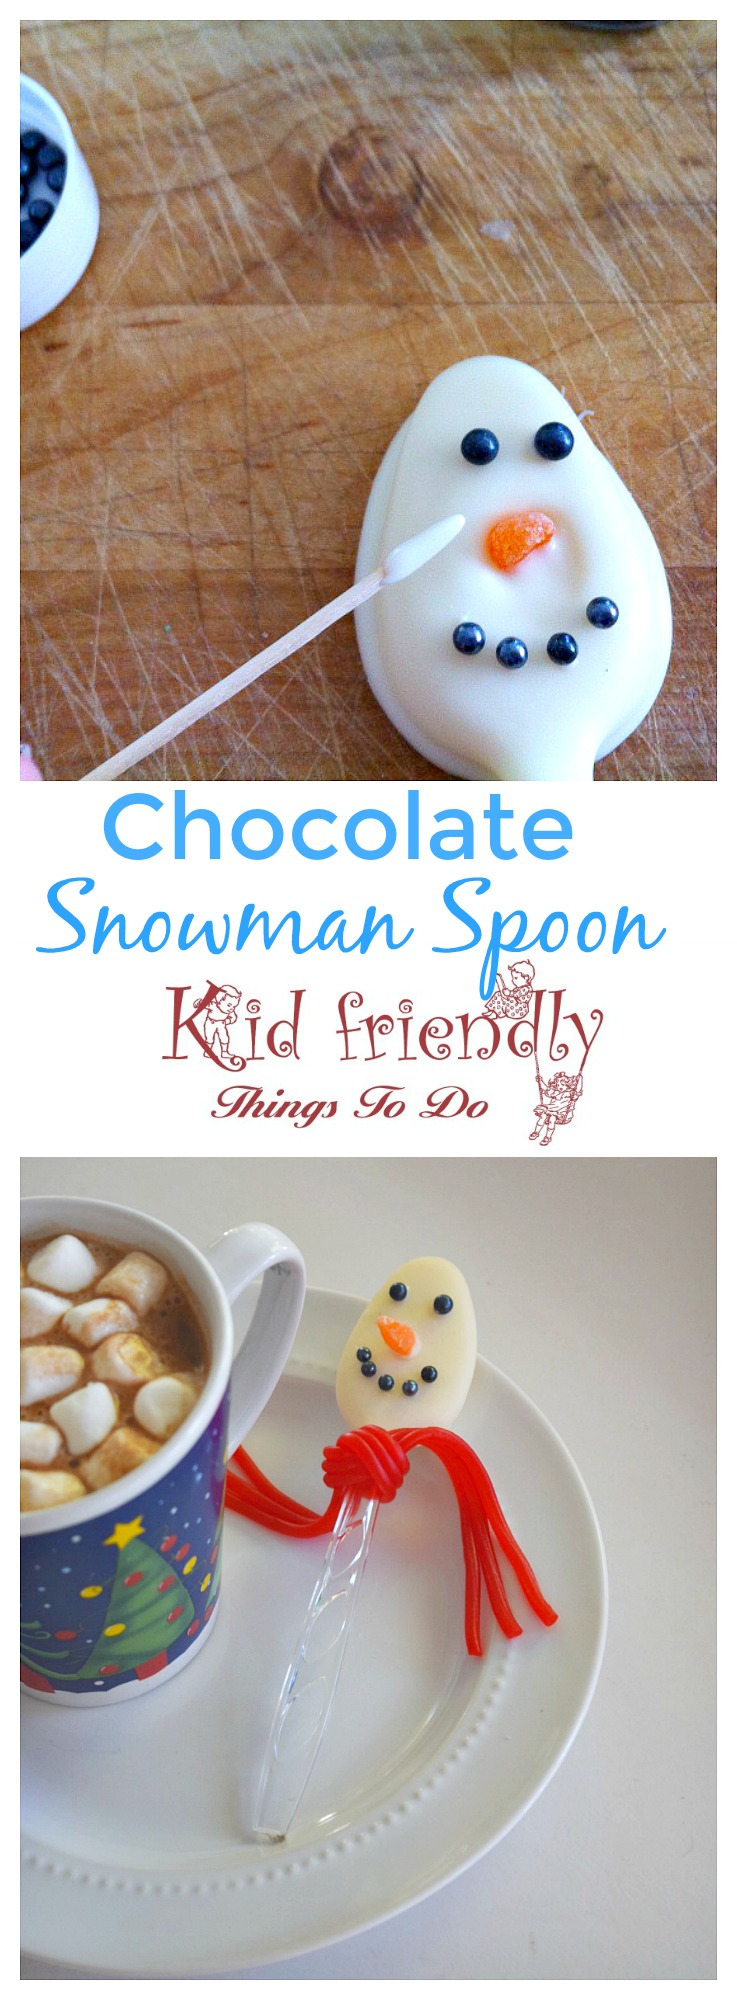 Chocolate Snowman Spoon for a fun Christmas or Winter treat with kids. Great for the hot chocolate bar! www.kidfriendlythingstodo.com